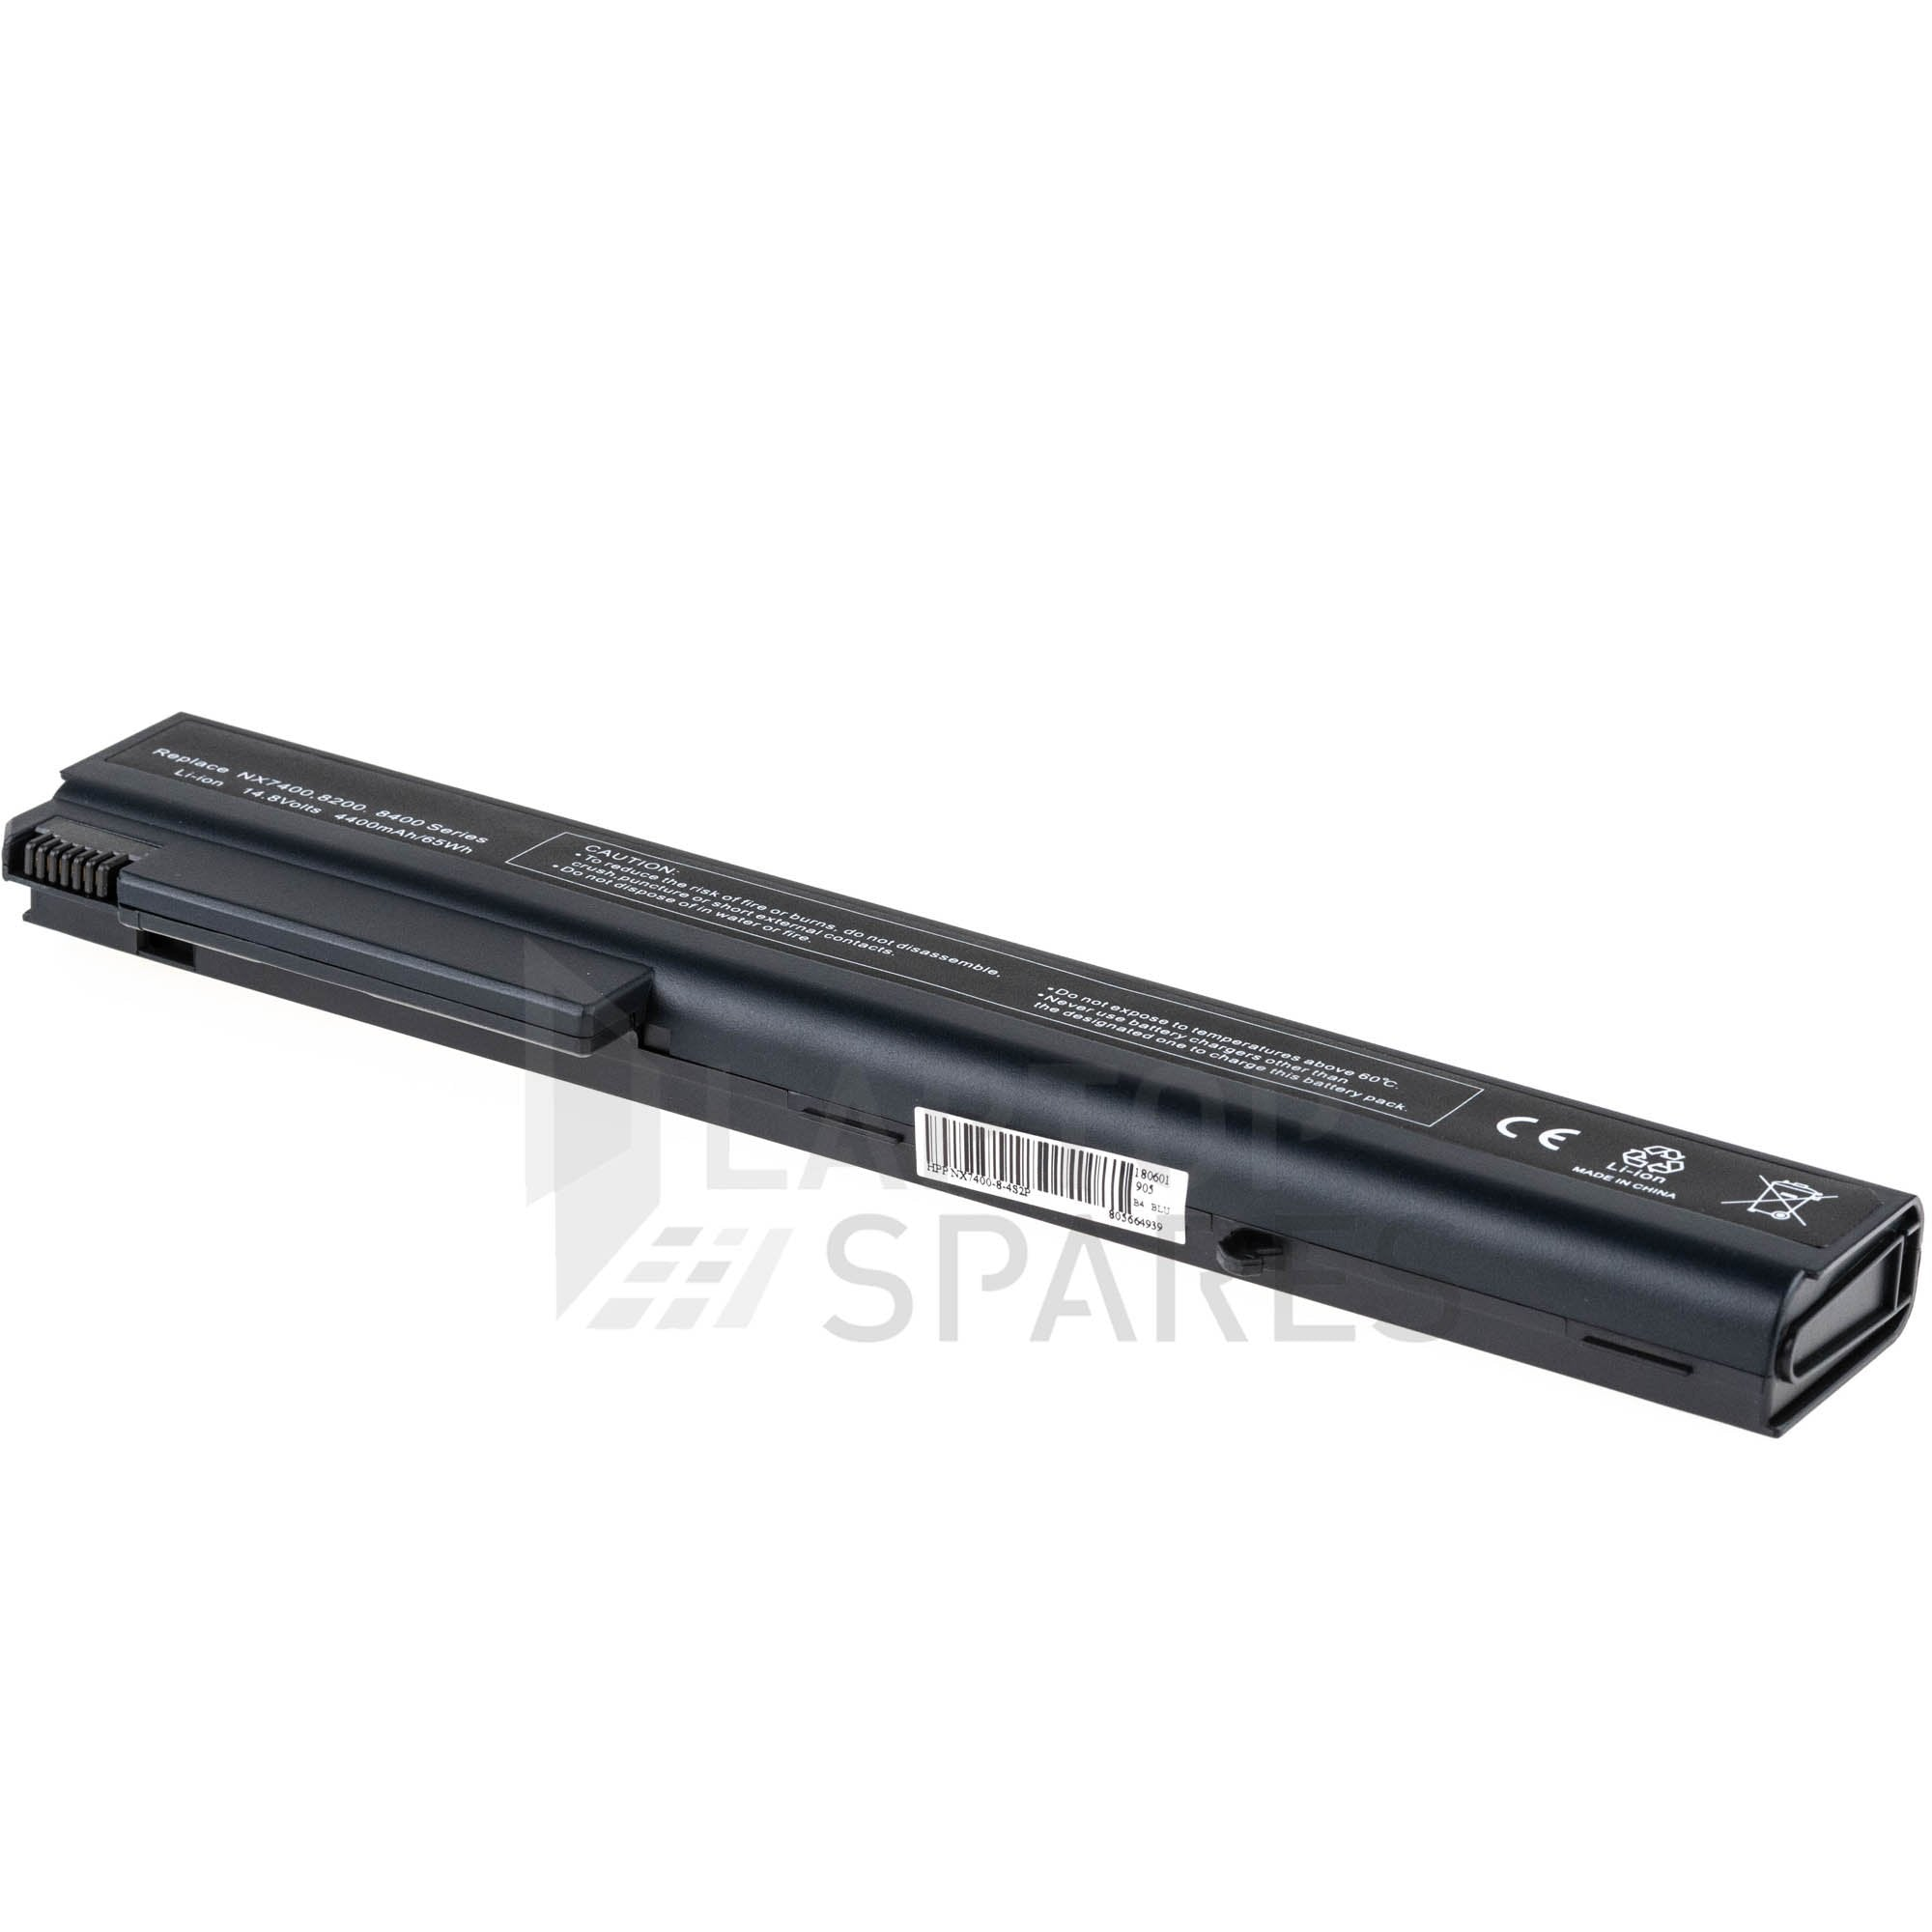 HP Business Notebook 8200  4400mAh 6 Cell Battery